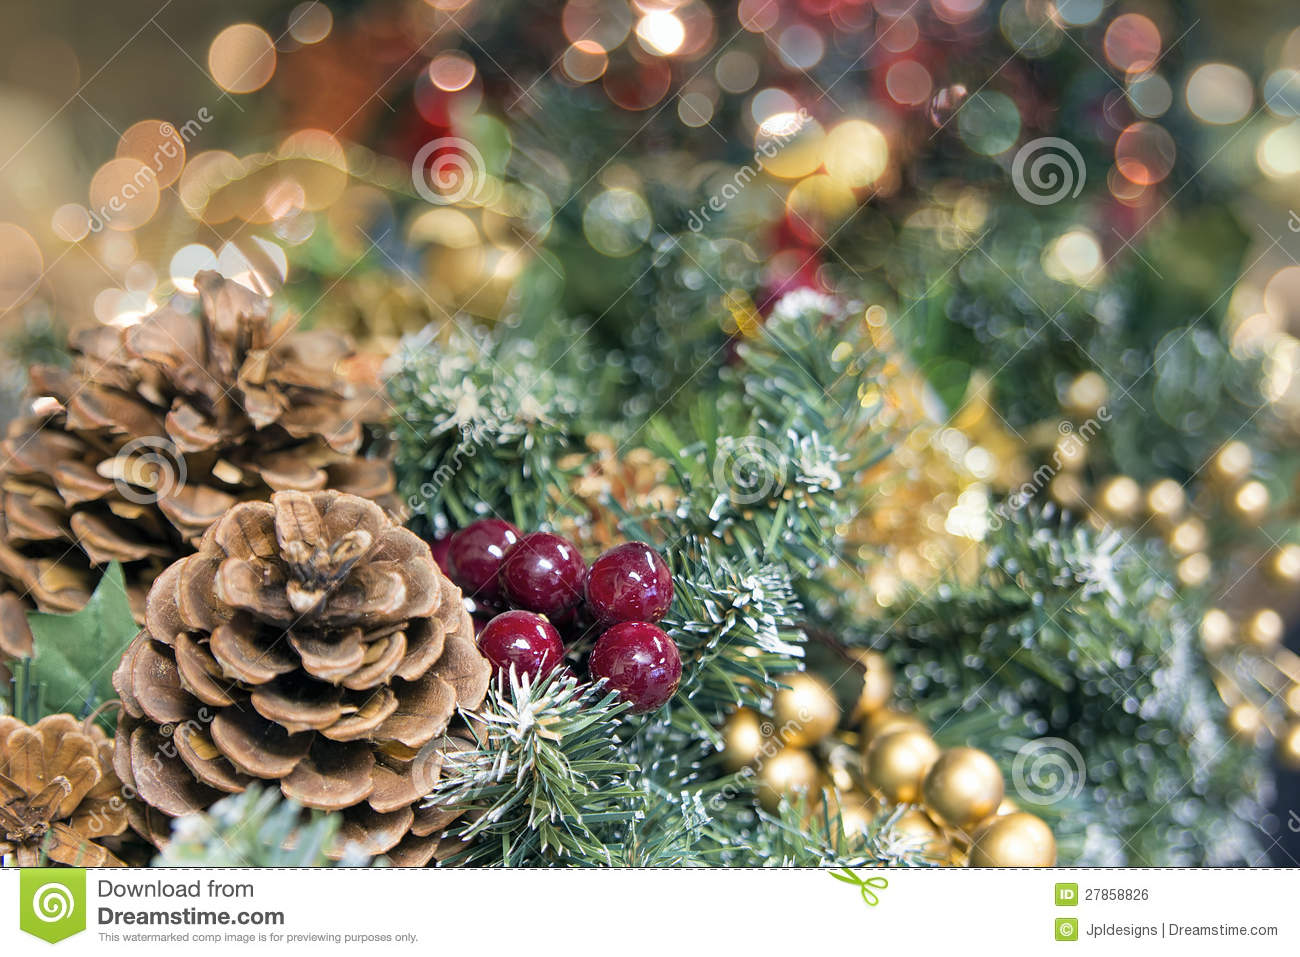 Christmas garlands decorations - Christmas Garland Decoration With Blurred Lights Royalty Free Stock Image Christmas Garland Decoration With Blurred